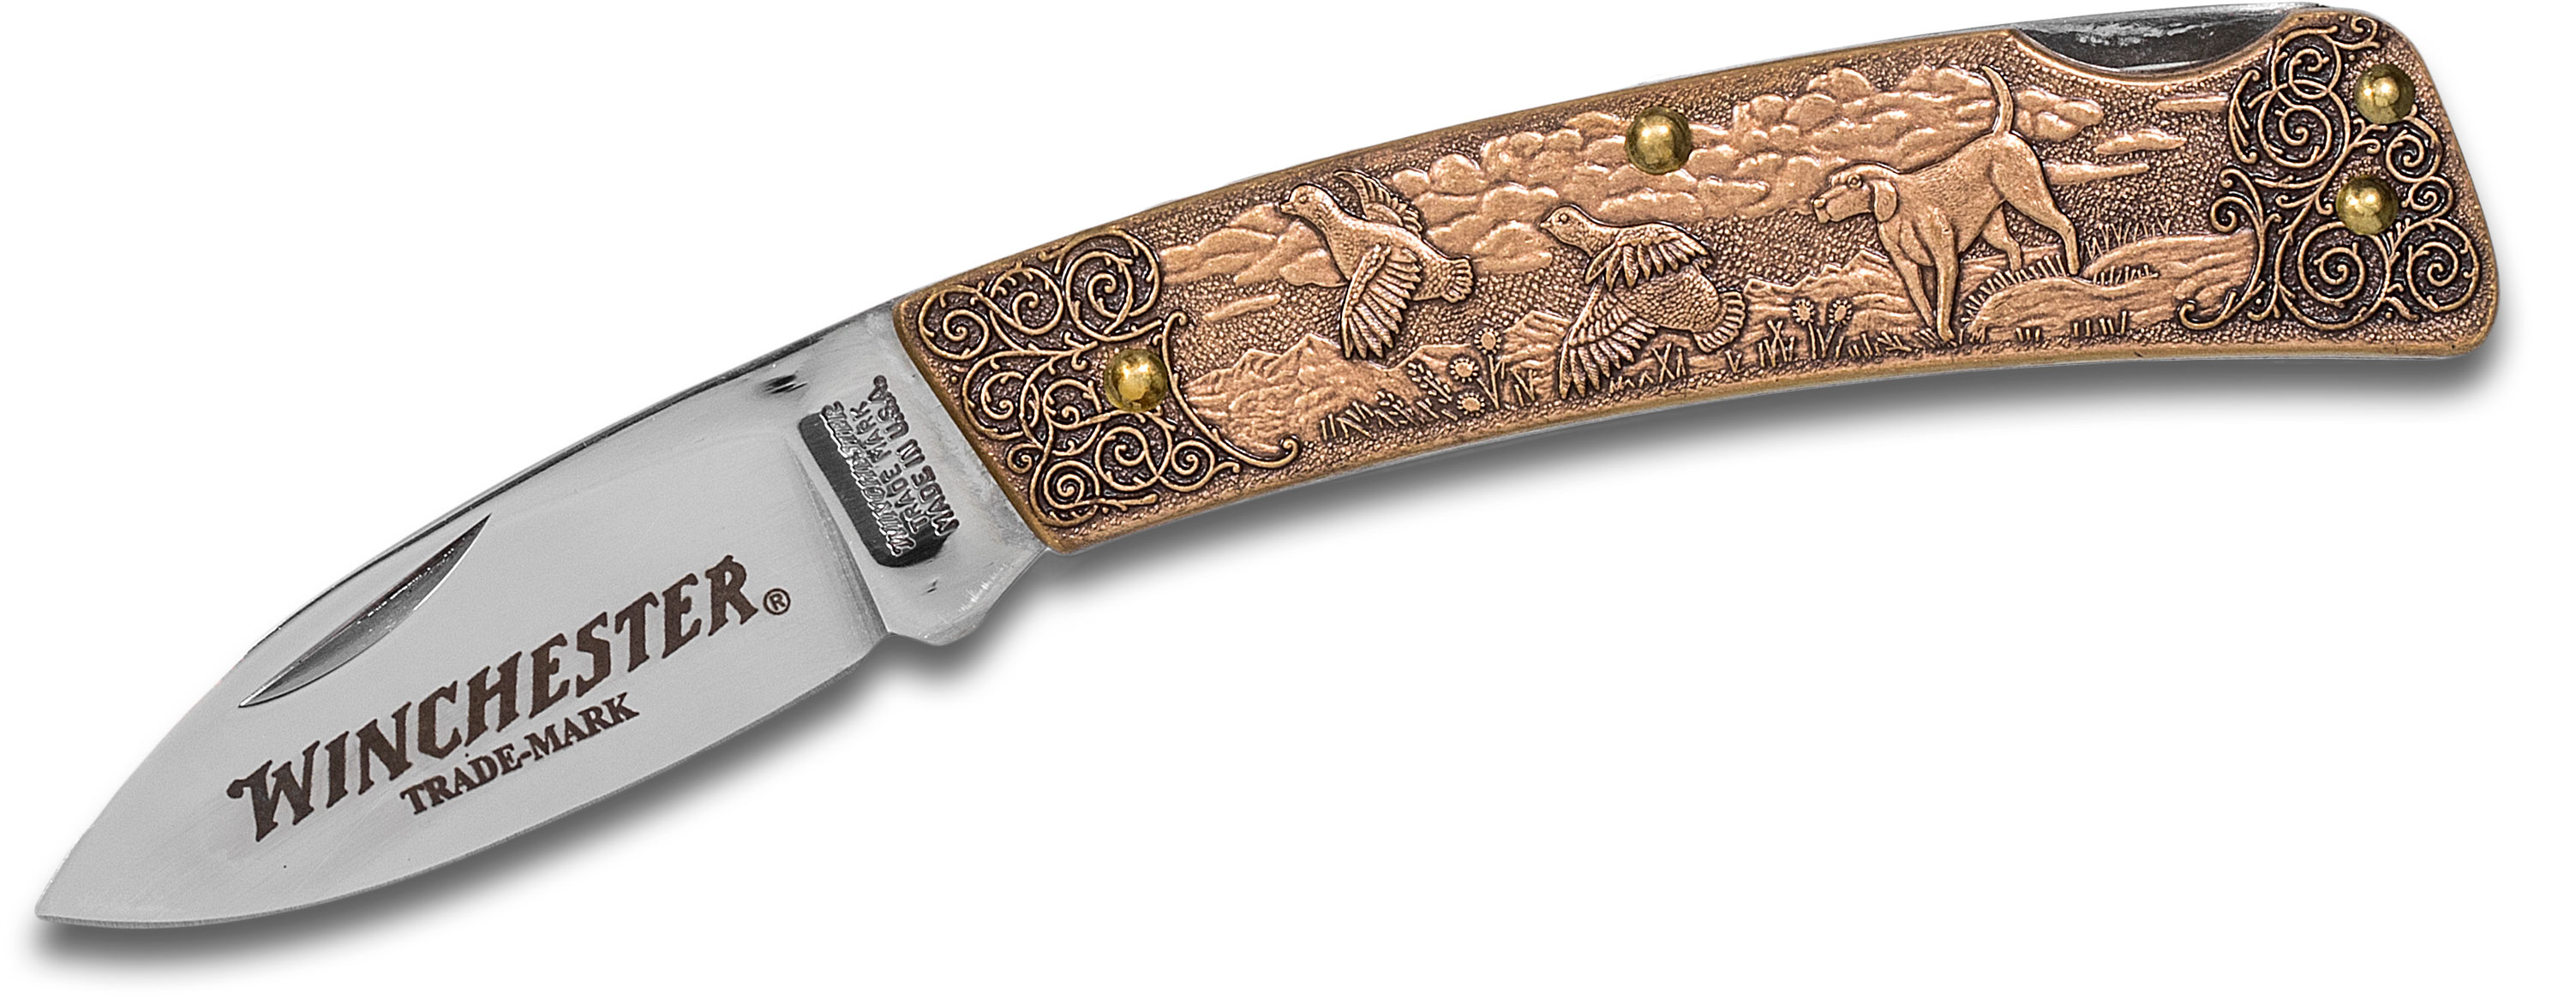 Dating winchester pocket knives